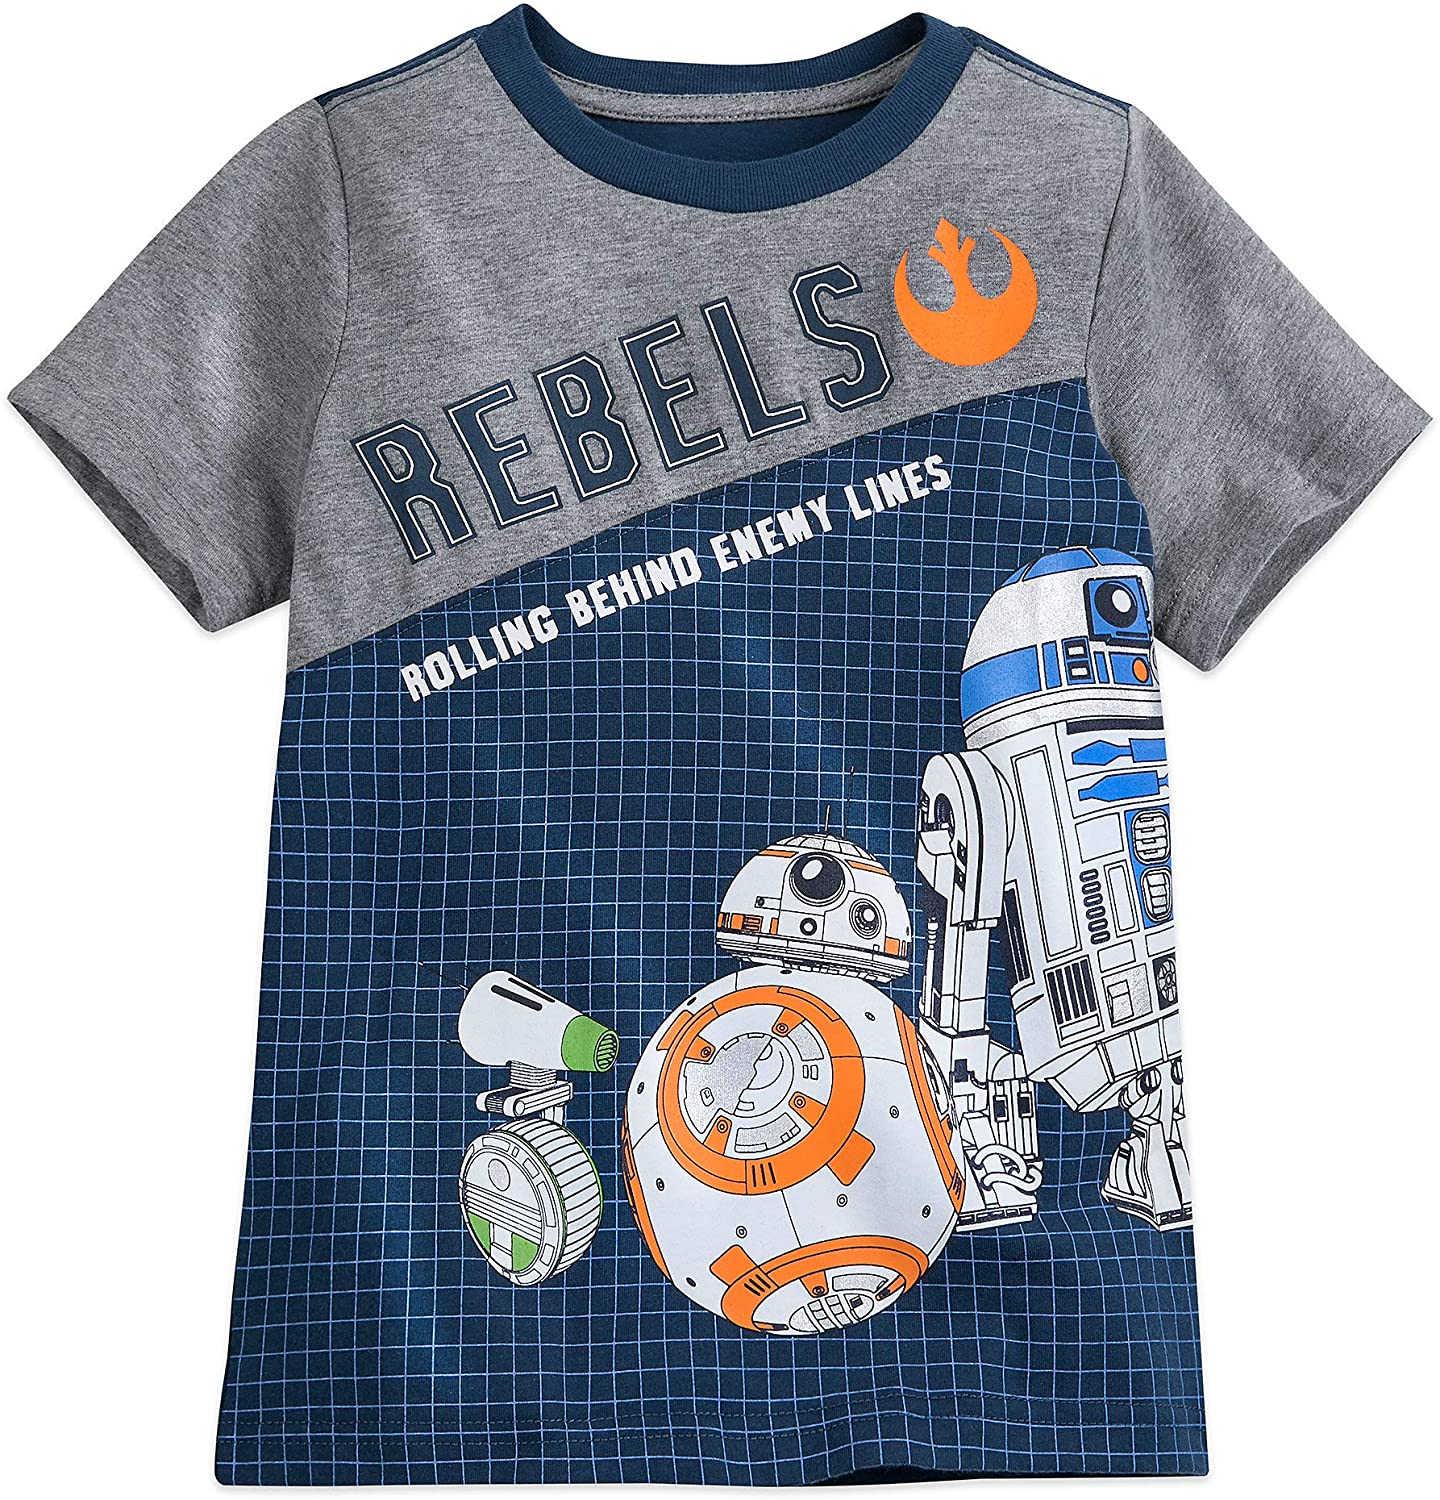 Star Wars BB-8 and D-O Fashion T-Shirt for Boys – The Rise of Skywalker